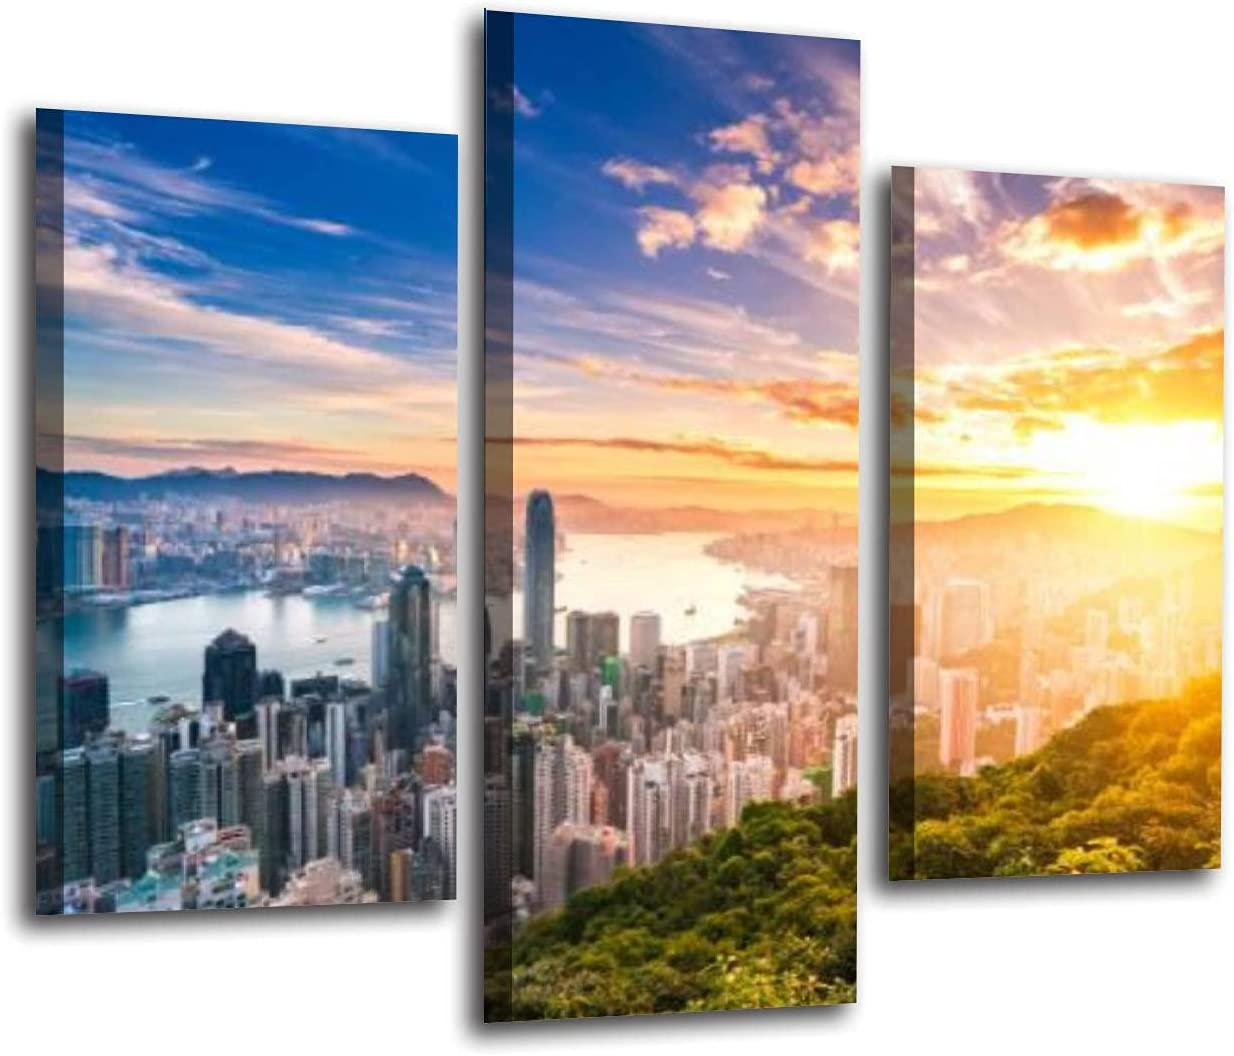 Canvas Print Wall Art Painting for Home Decor Hong Kong skyline at sunrise Paintings Modern Giclee Artwork Living Room Decoration Pictures Prints On Canvas 3 Pieces